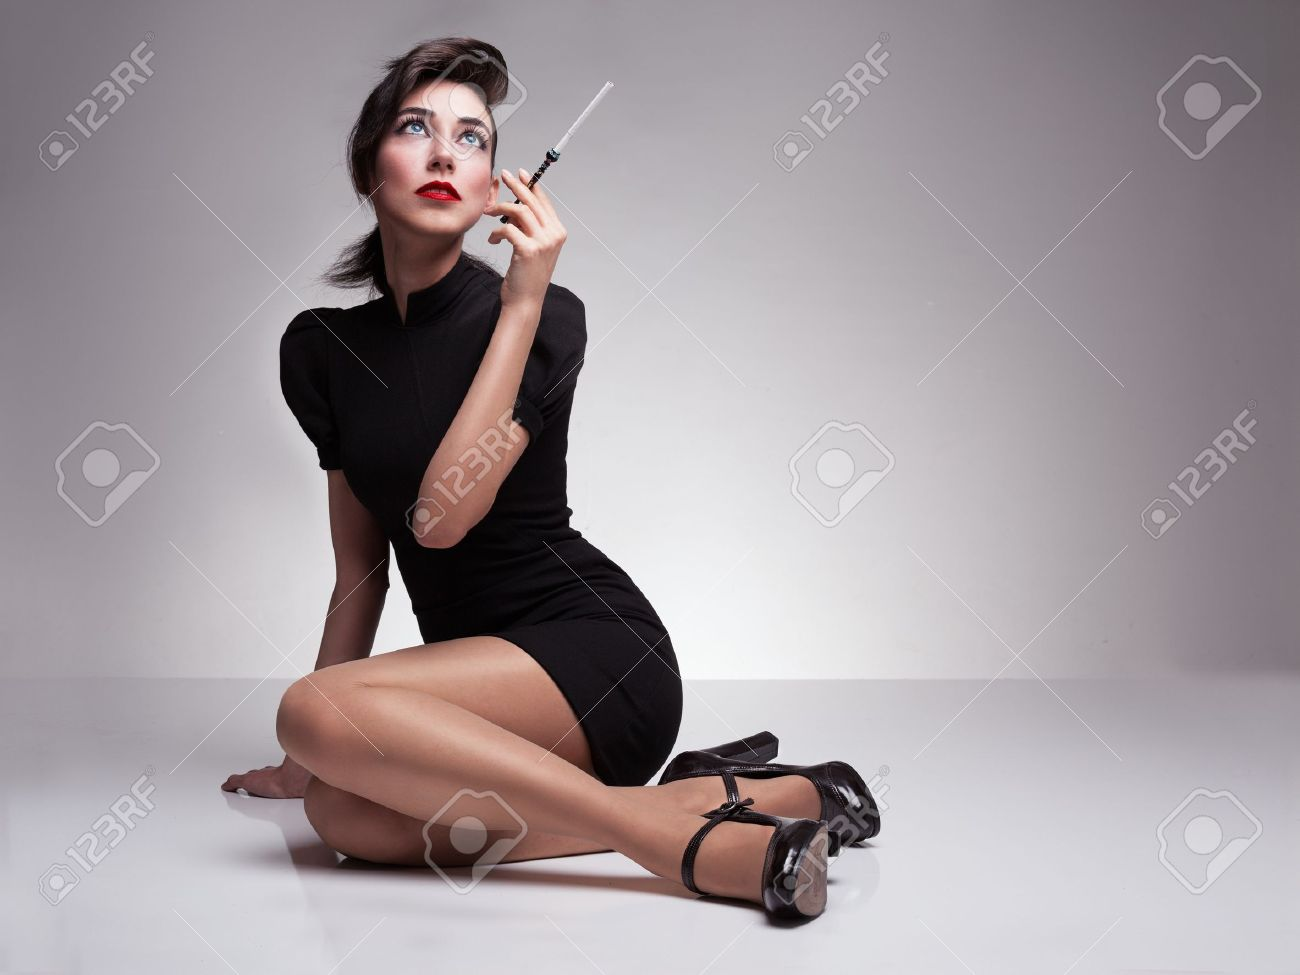 Beautiful Lady With Black Dress And High Heels Holding A Cigarette ...